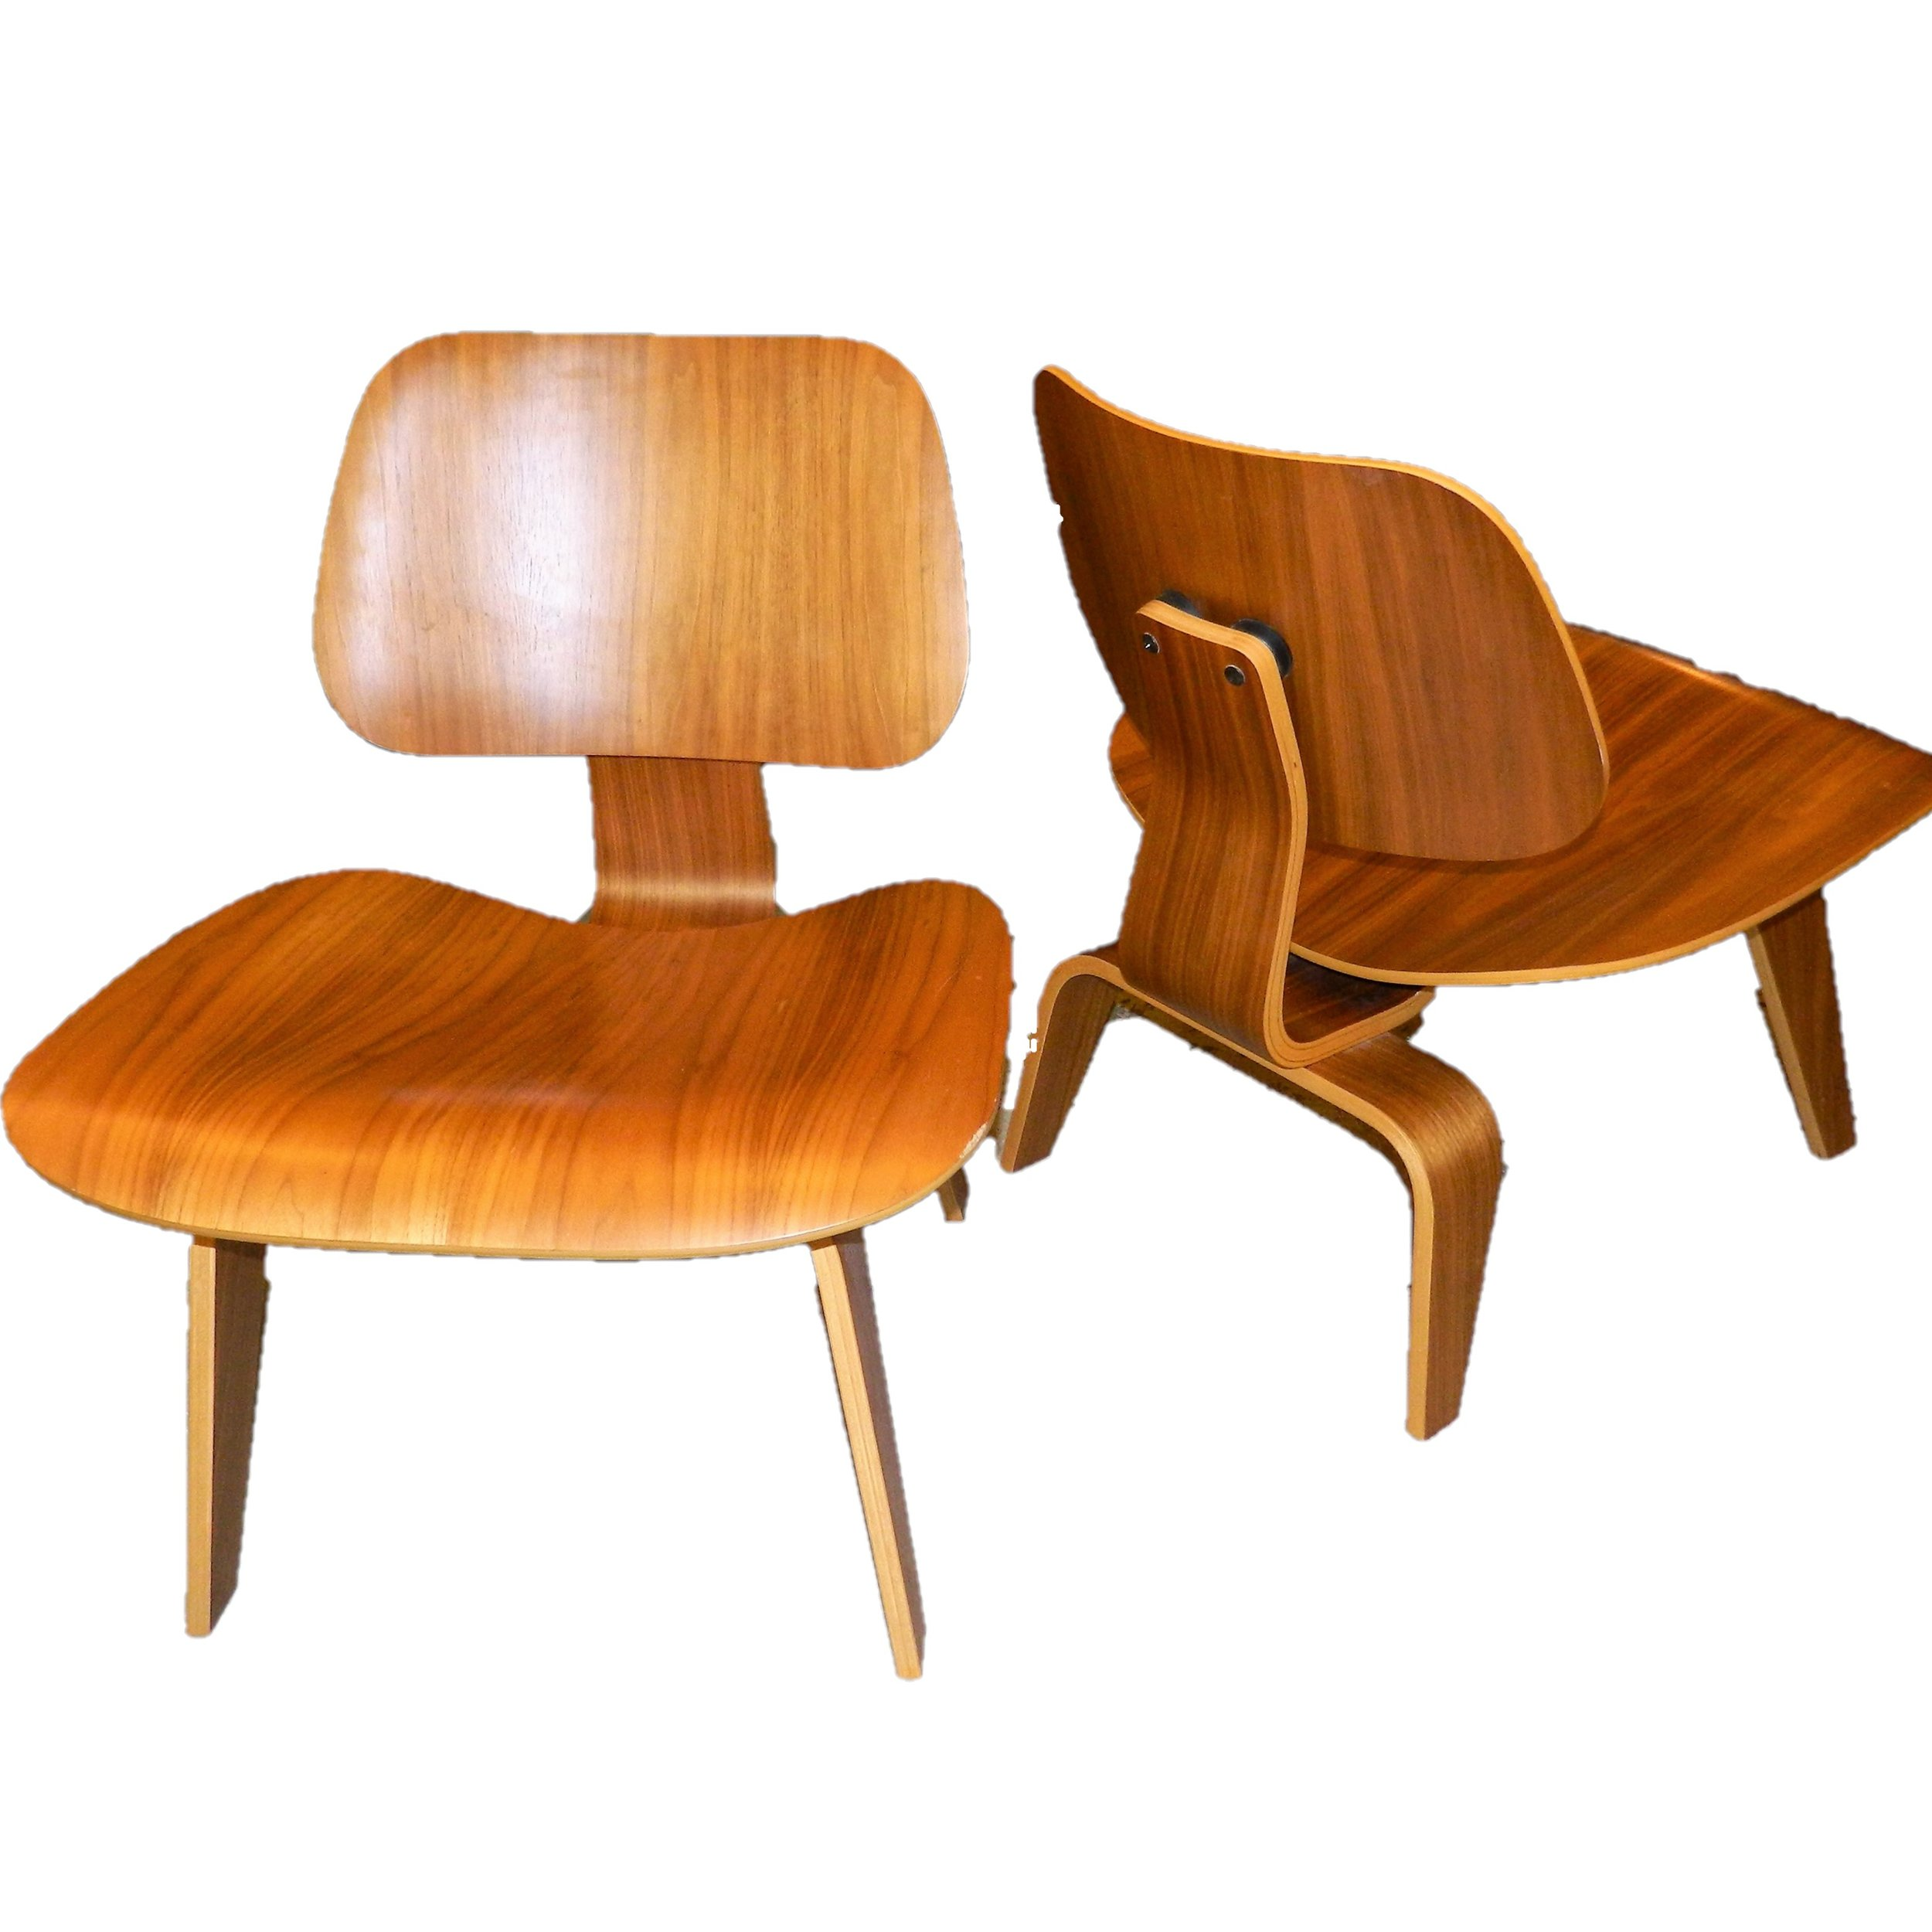 Eames Plywood Chair Charles Eames Plywood Chair